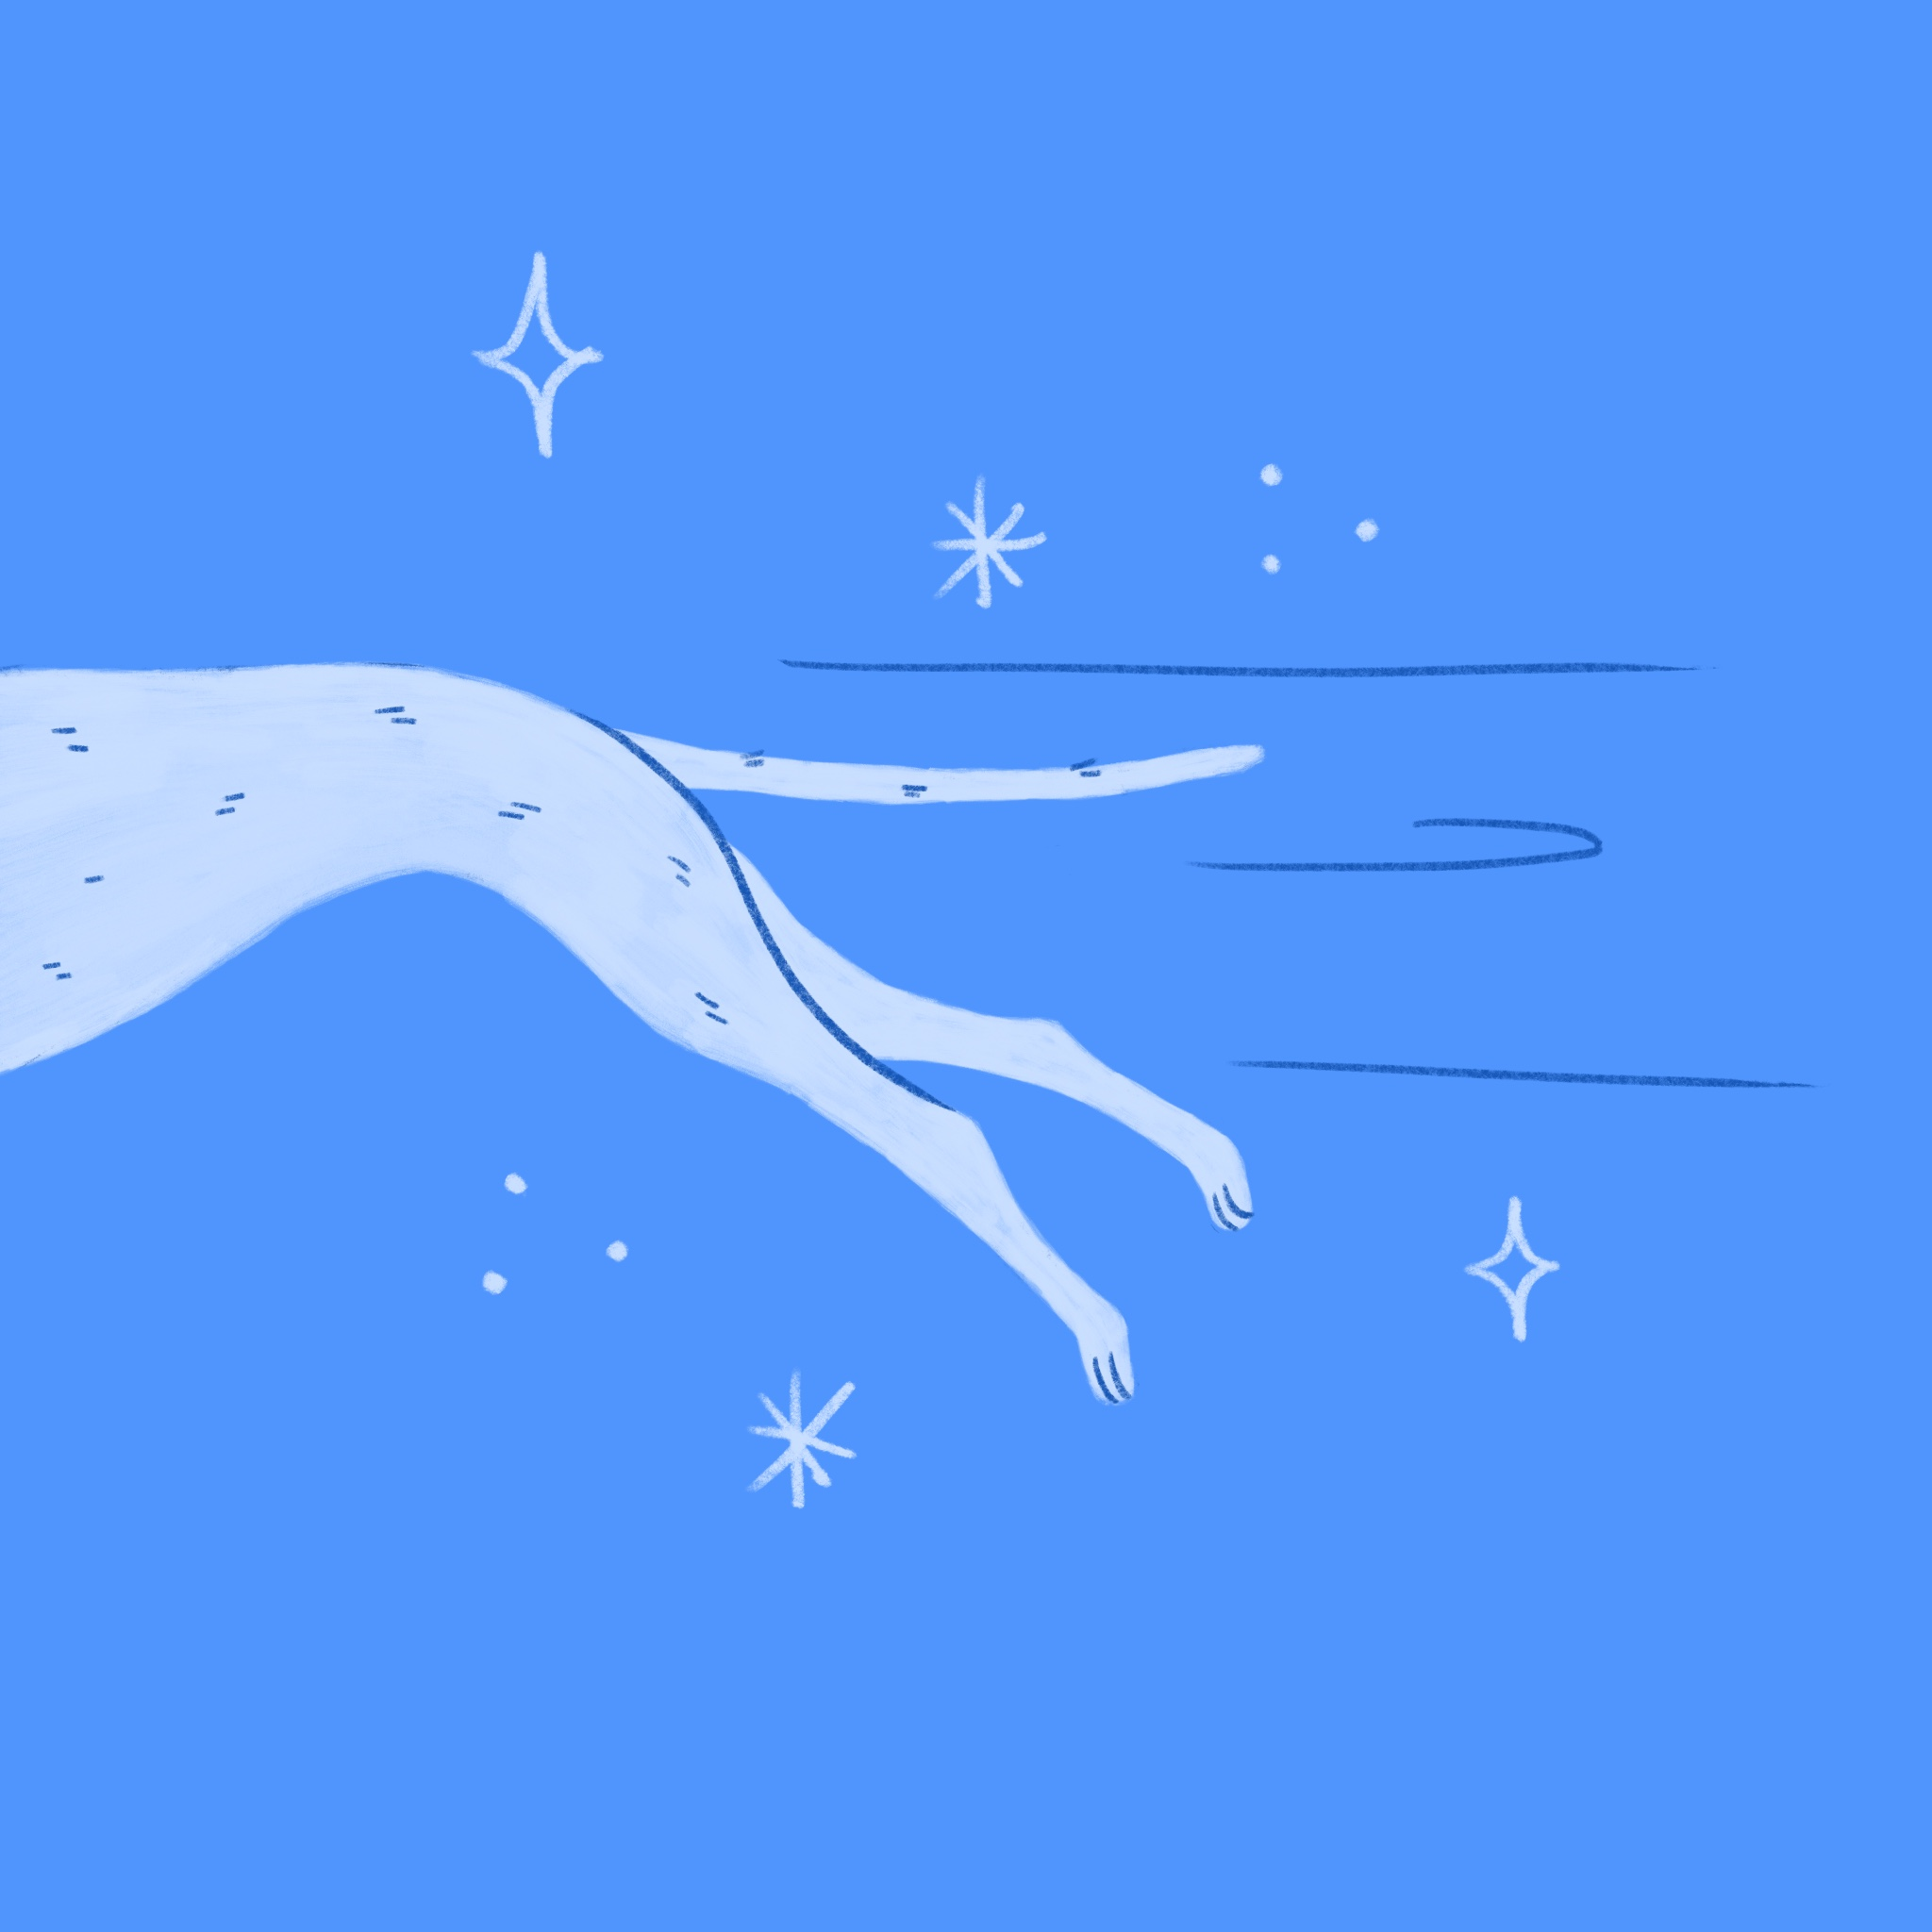 An illustration of a Greyhound dog